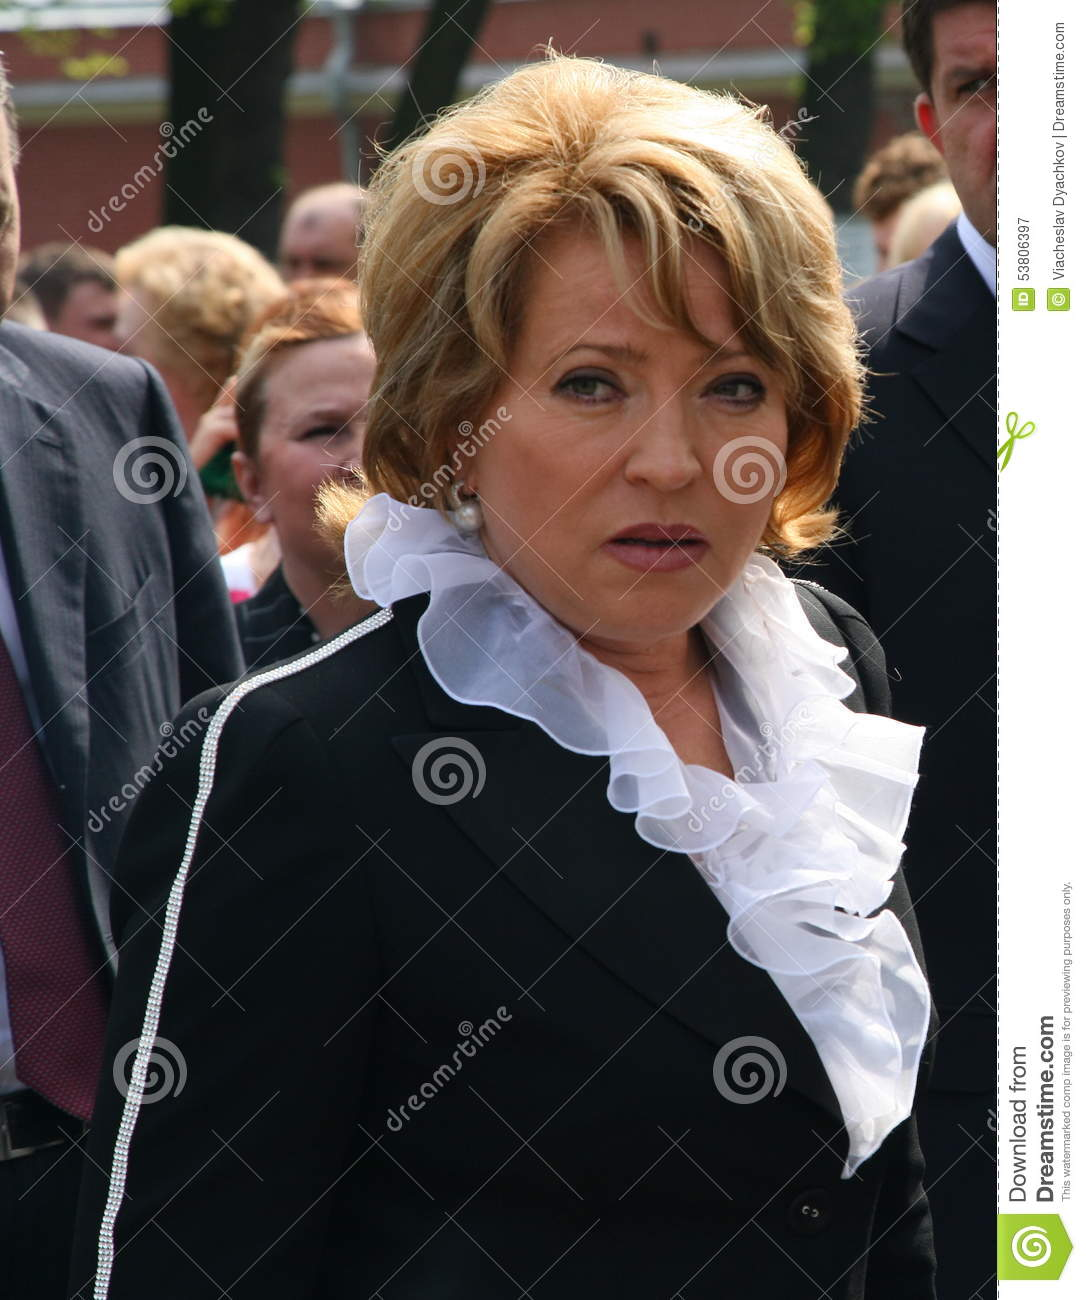 Portrait of Valentina Matvienko, one of the most famous contemporary female politicians.